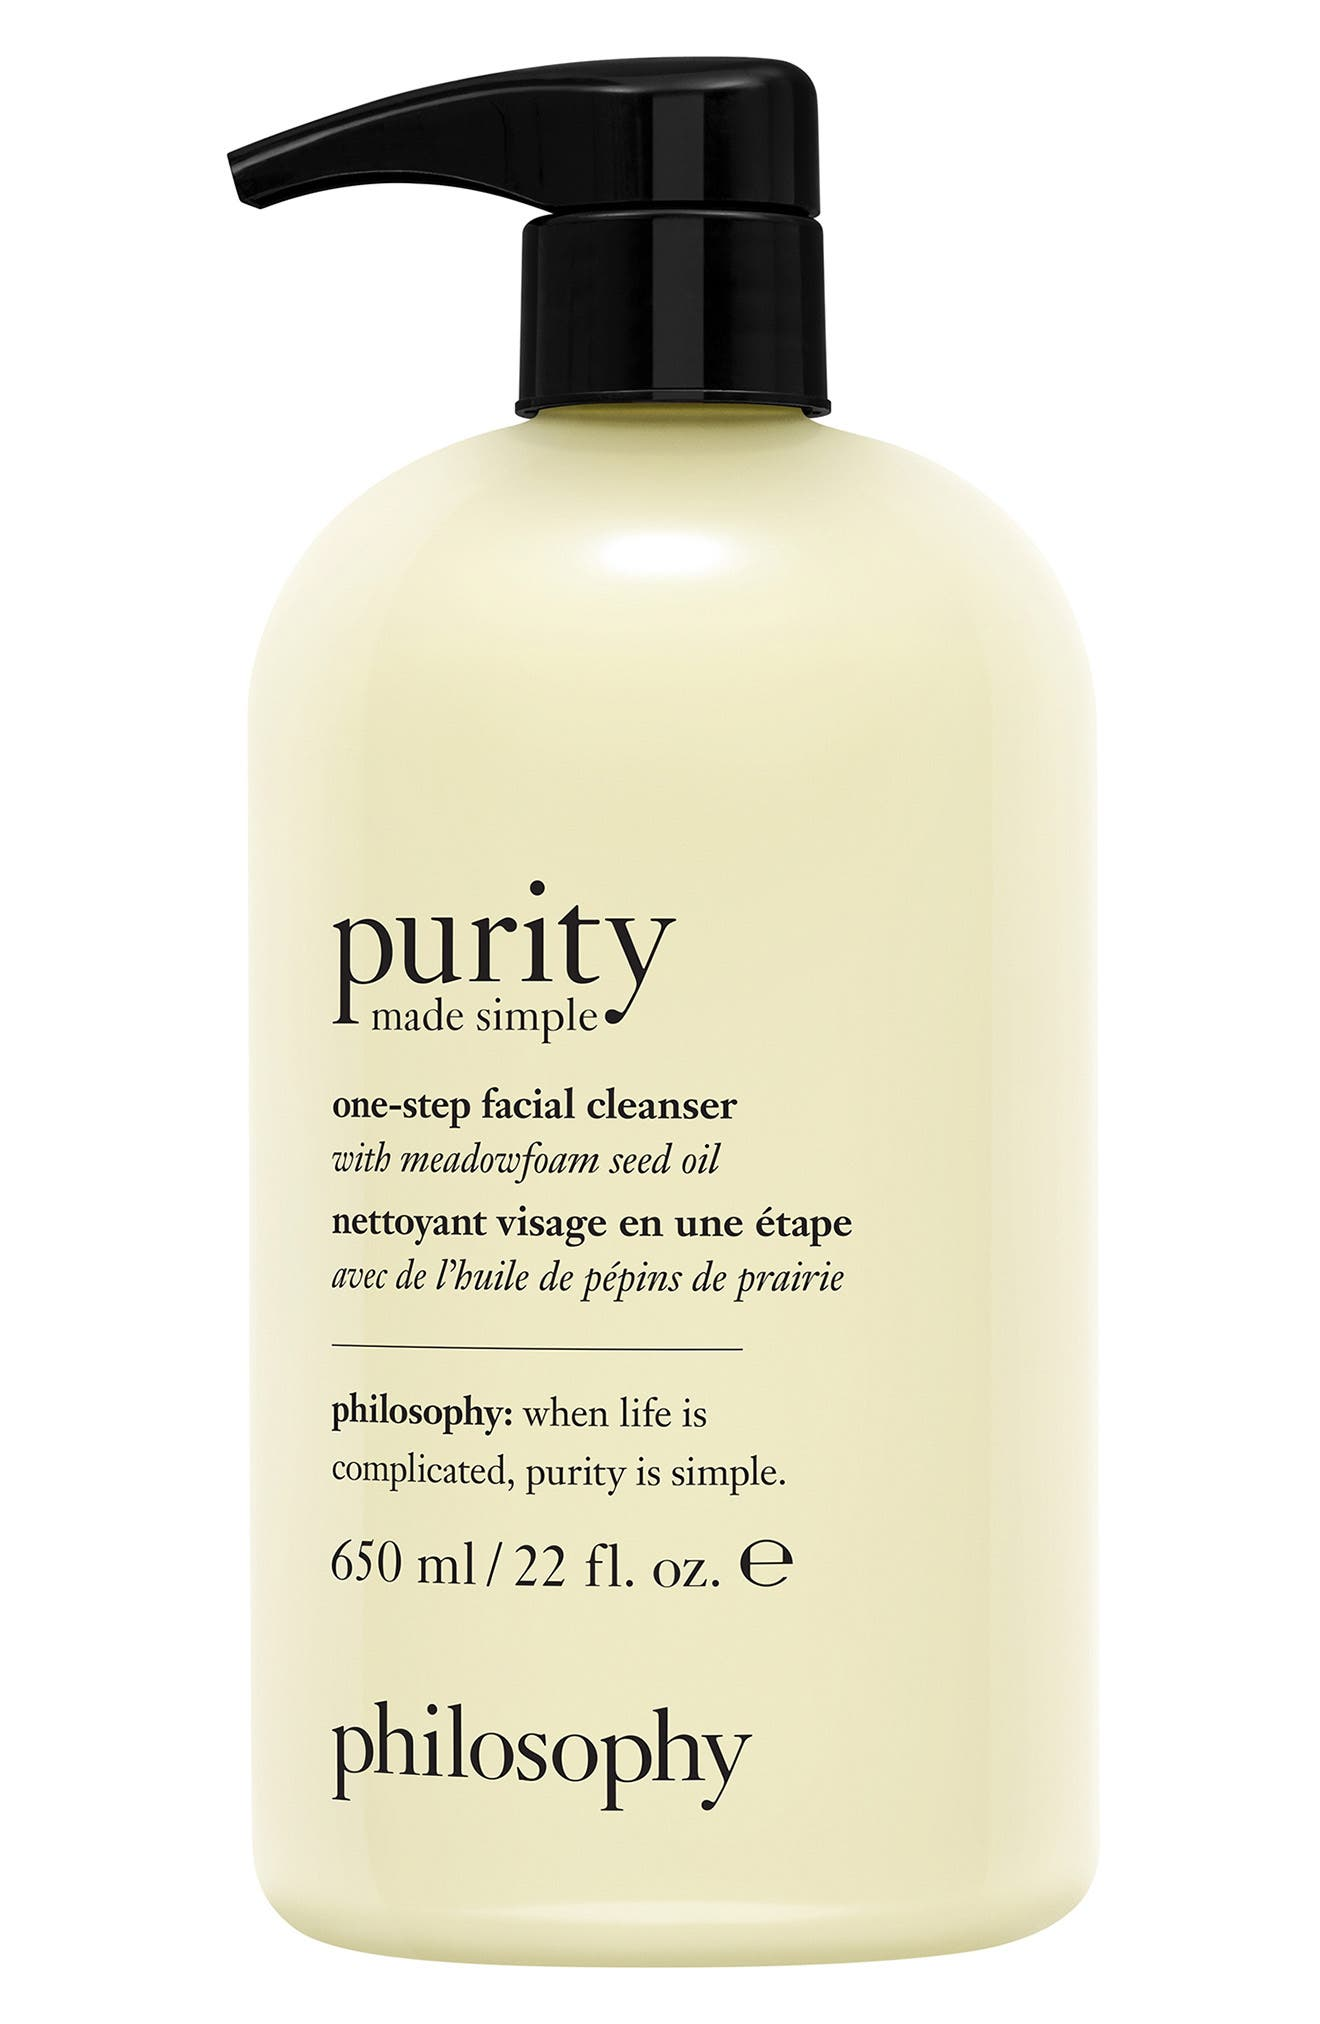 Purity made simple one-step facial cleanser | Nordstrom